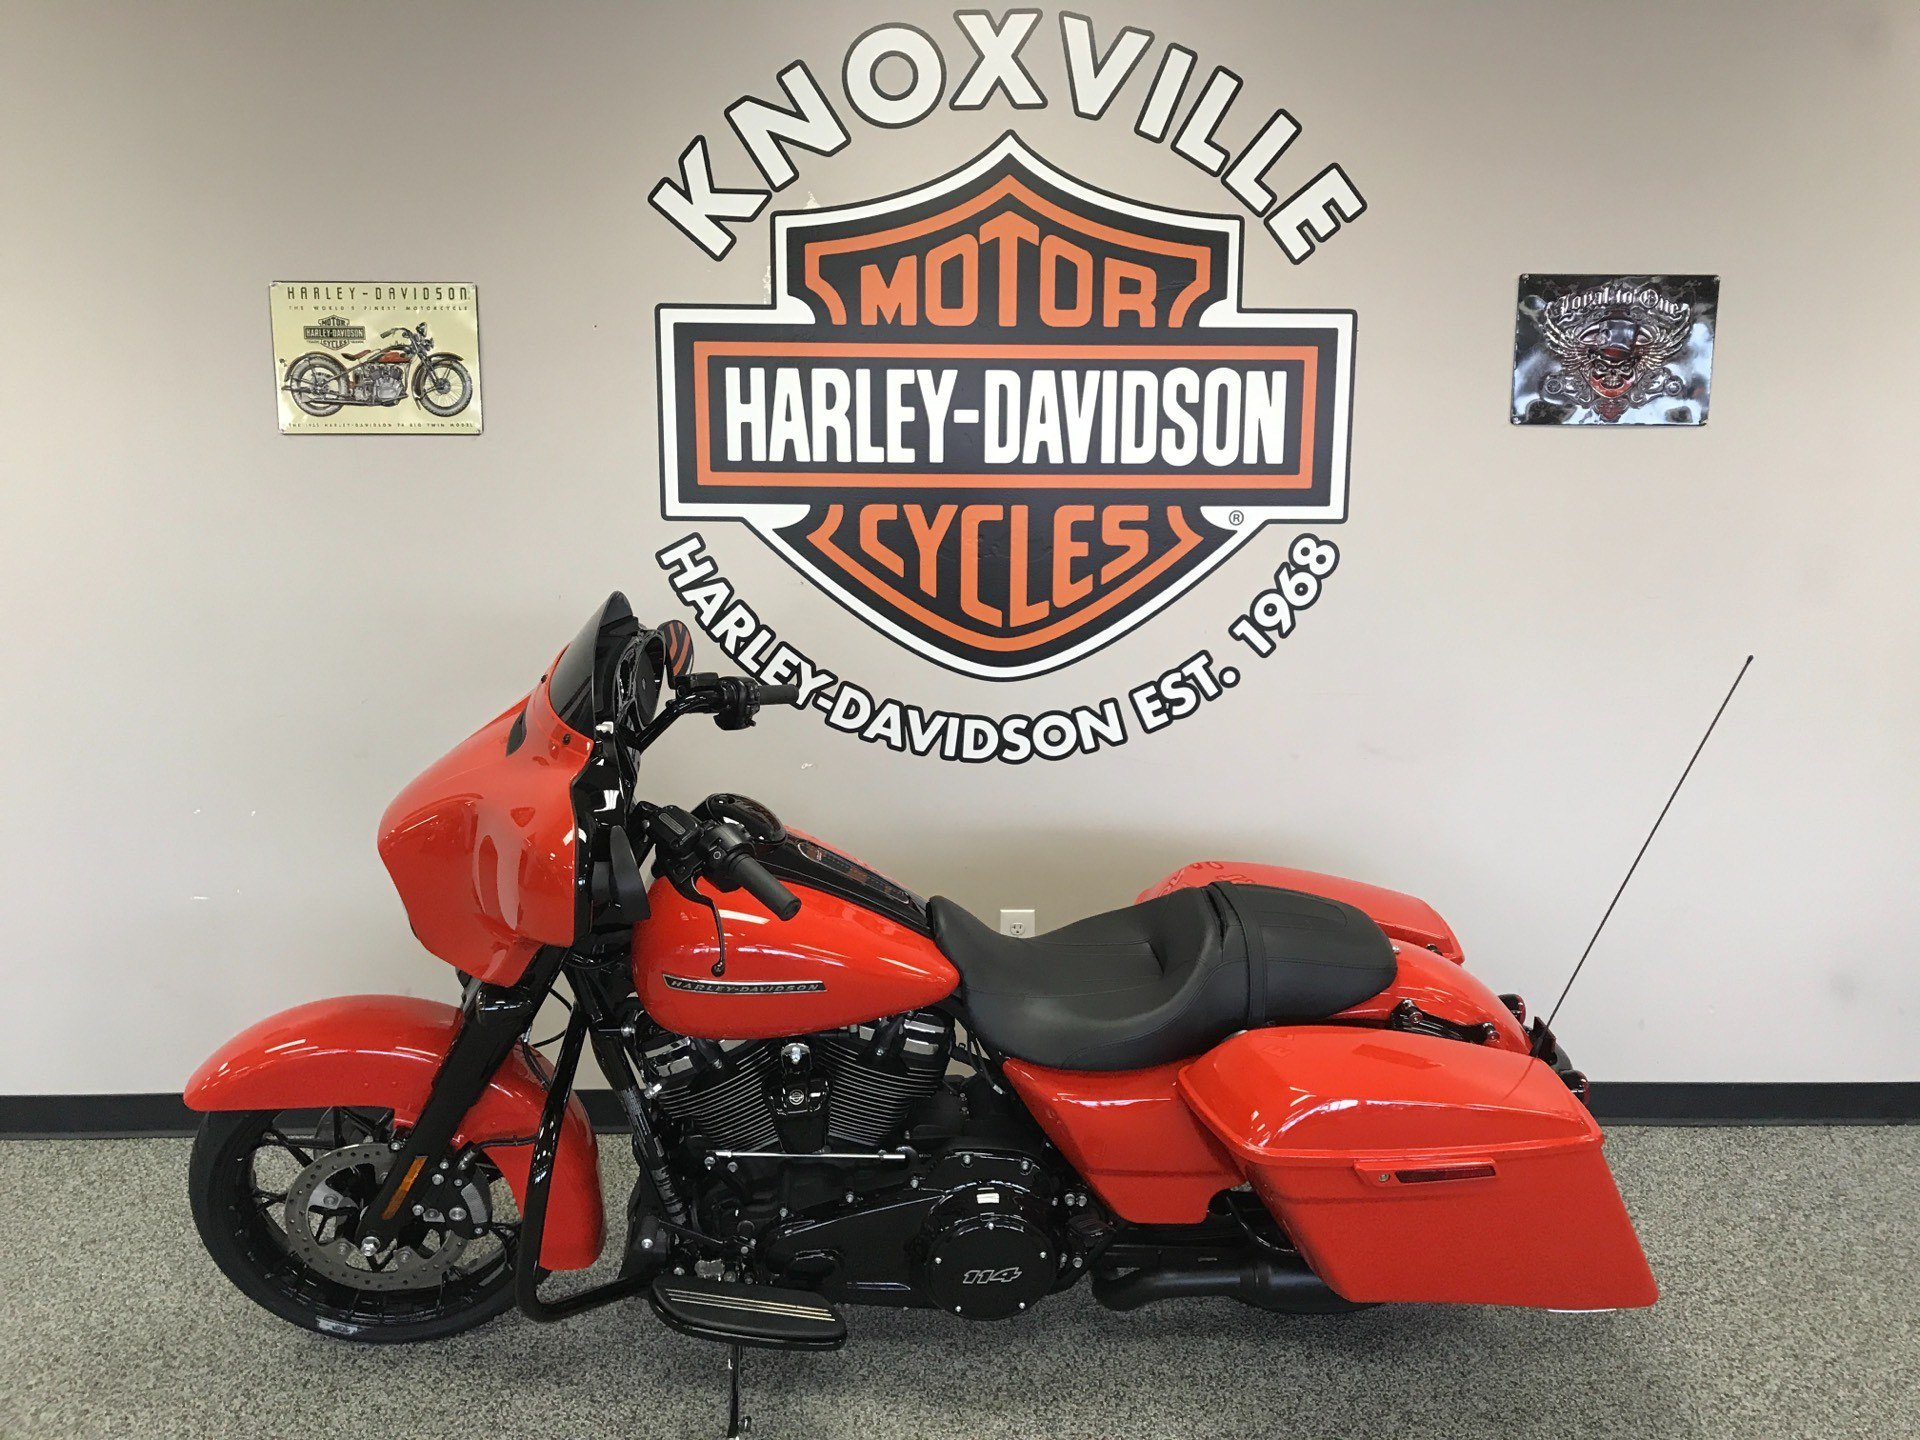 2020 Harley-Davidson STREET GLIDE SPECIAL in Knoxville, Tennessee - Photo 17